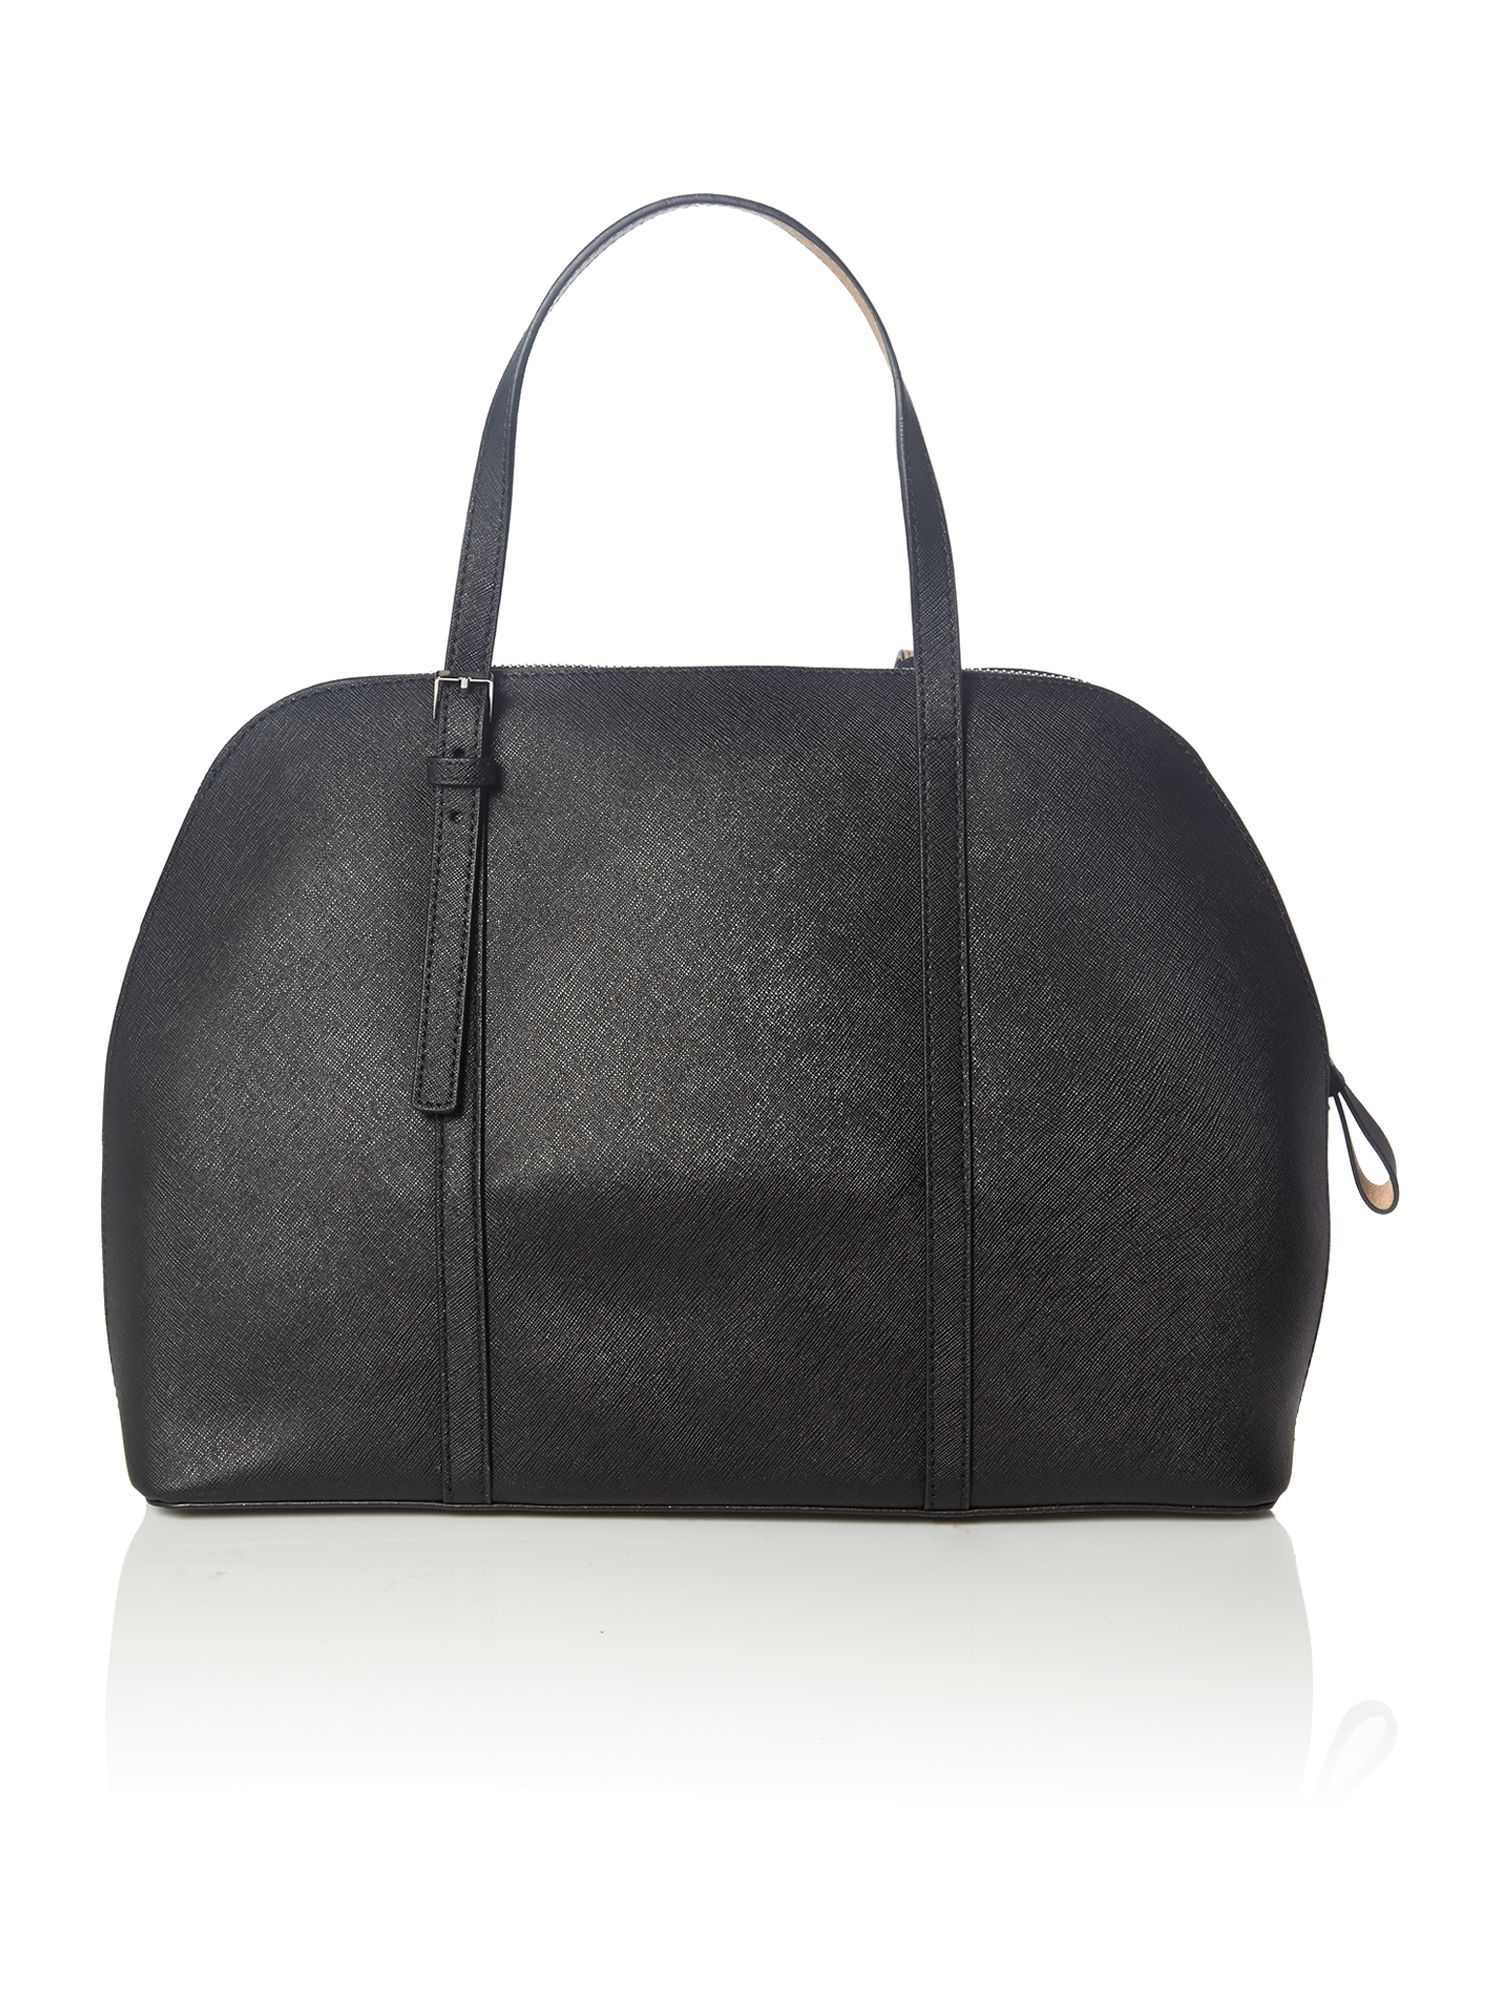 Sofie black dome bag